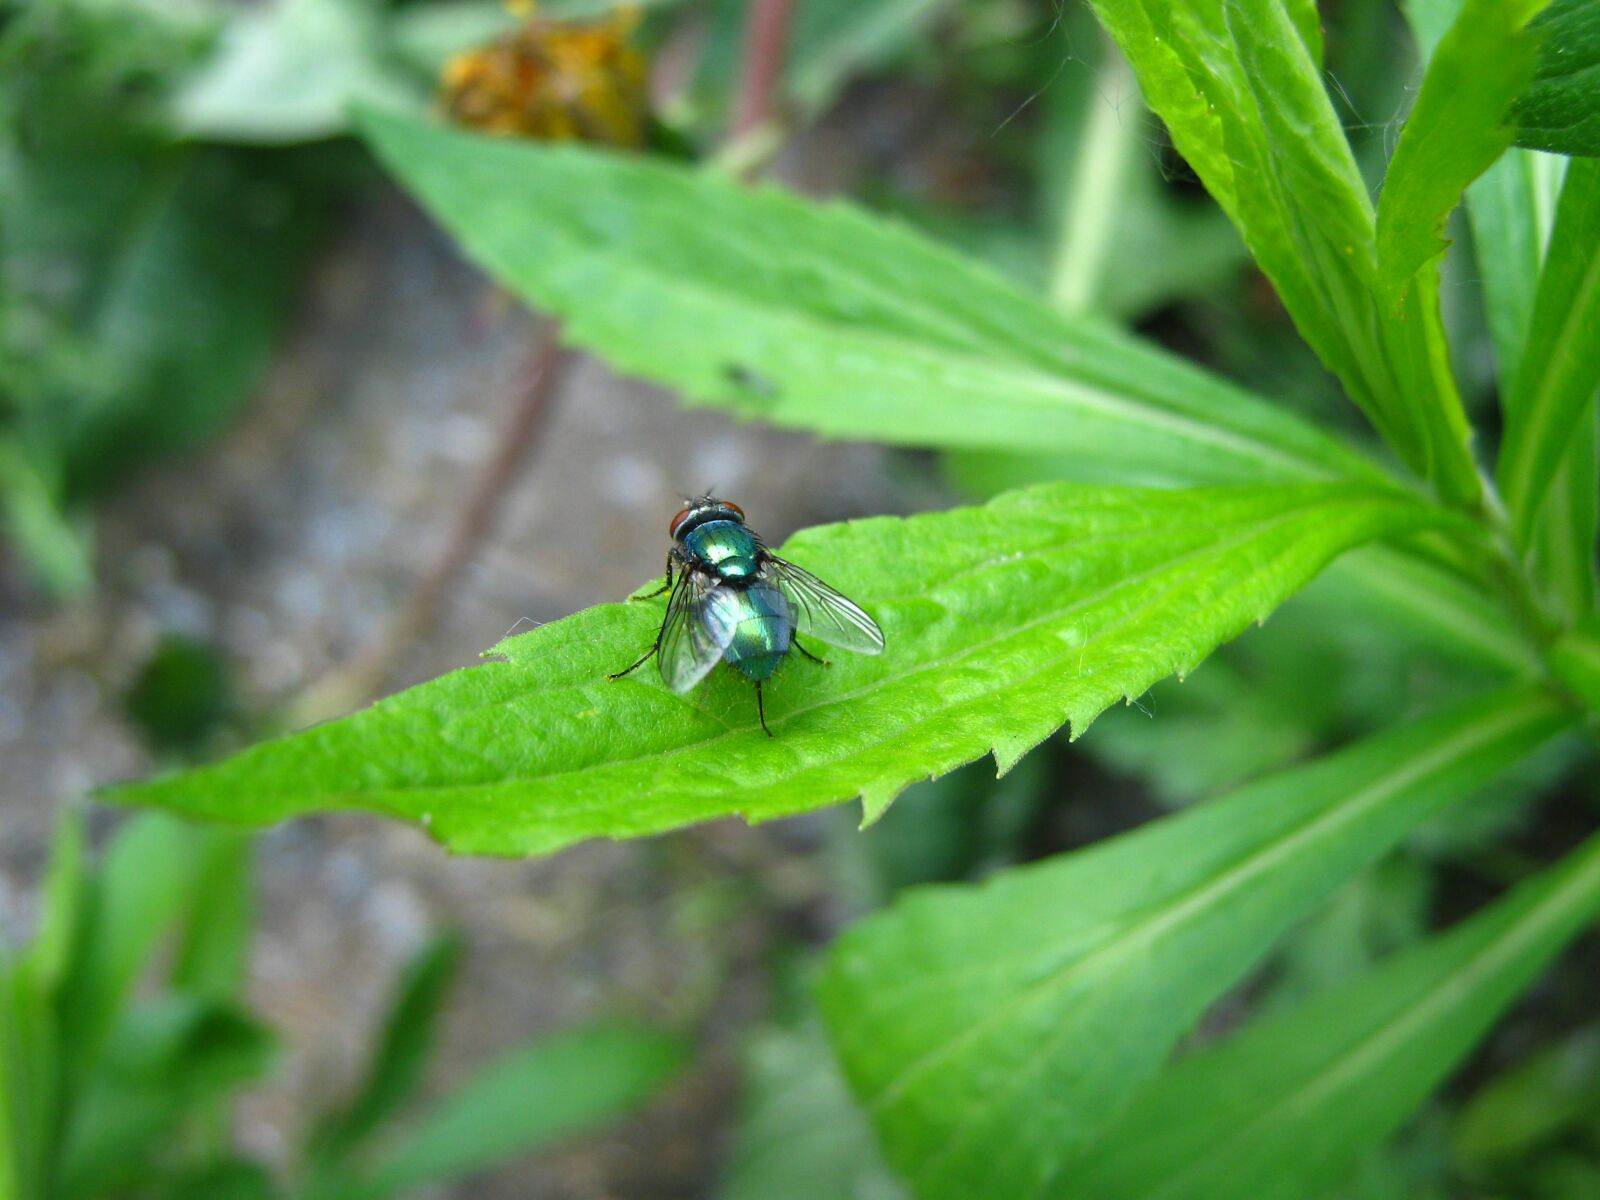 """Canon PowerShot A470 sample photo. """"Macro, fly, insect"""" photography"""